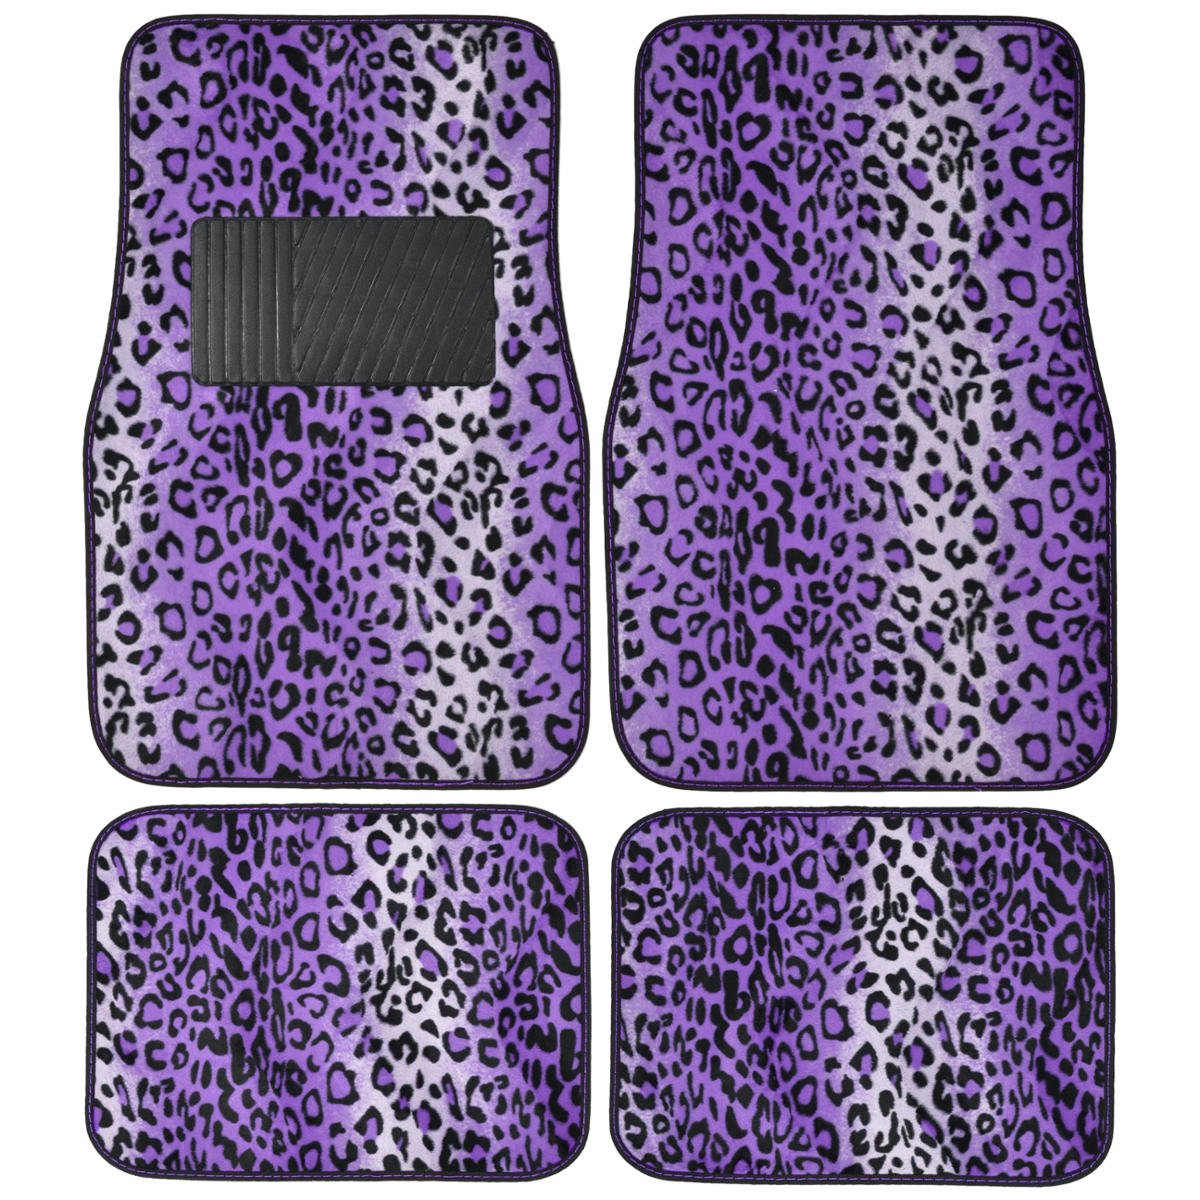 A Set of 4 Universal Fit Animal Print Carpet Floor mats for Cars / Truck - Leopard Purple